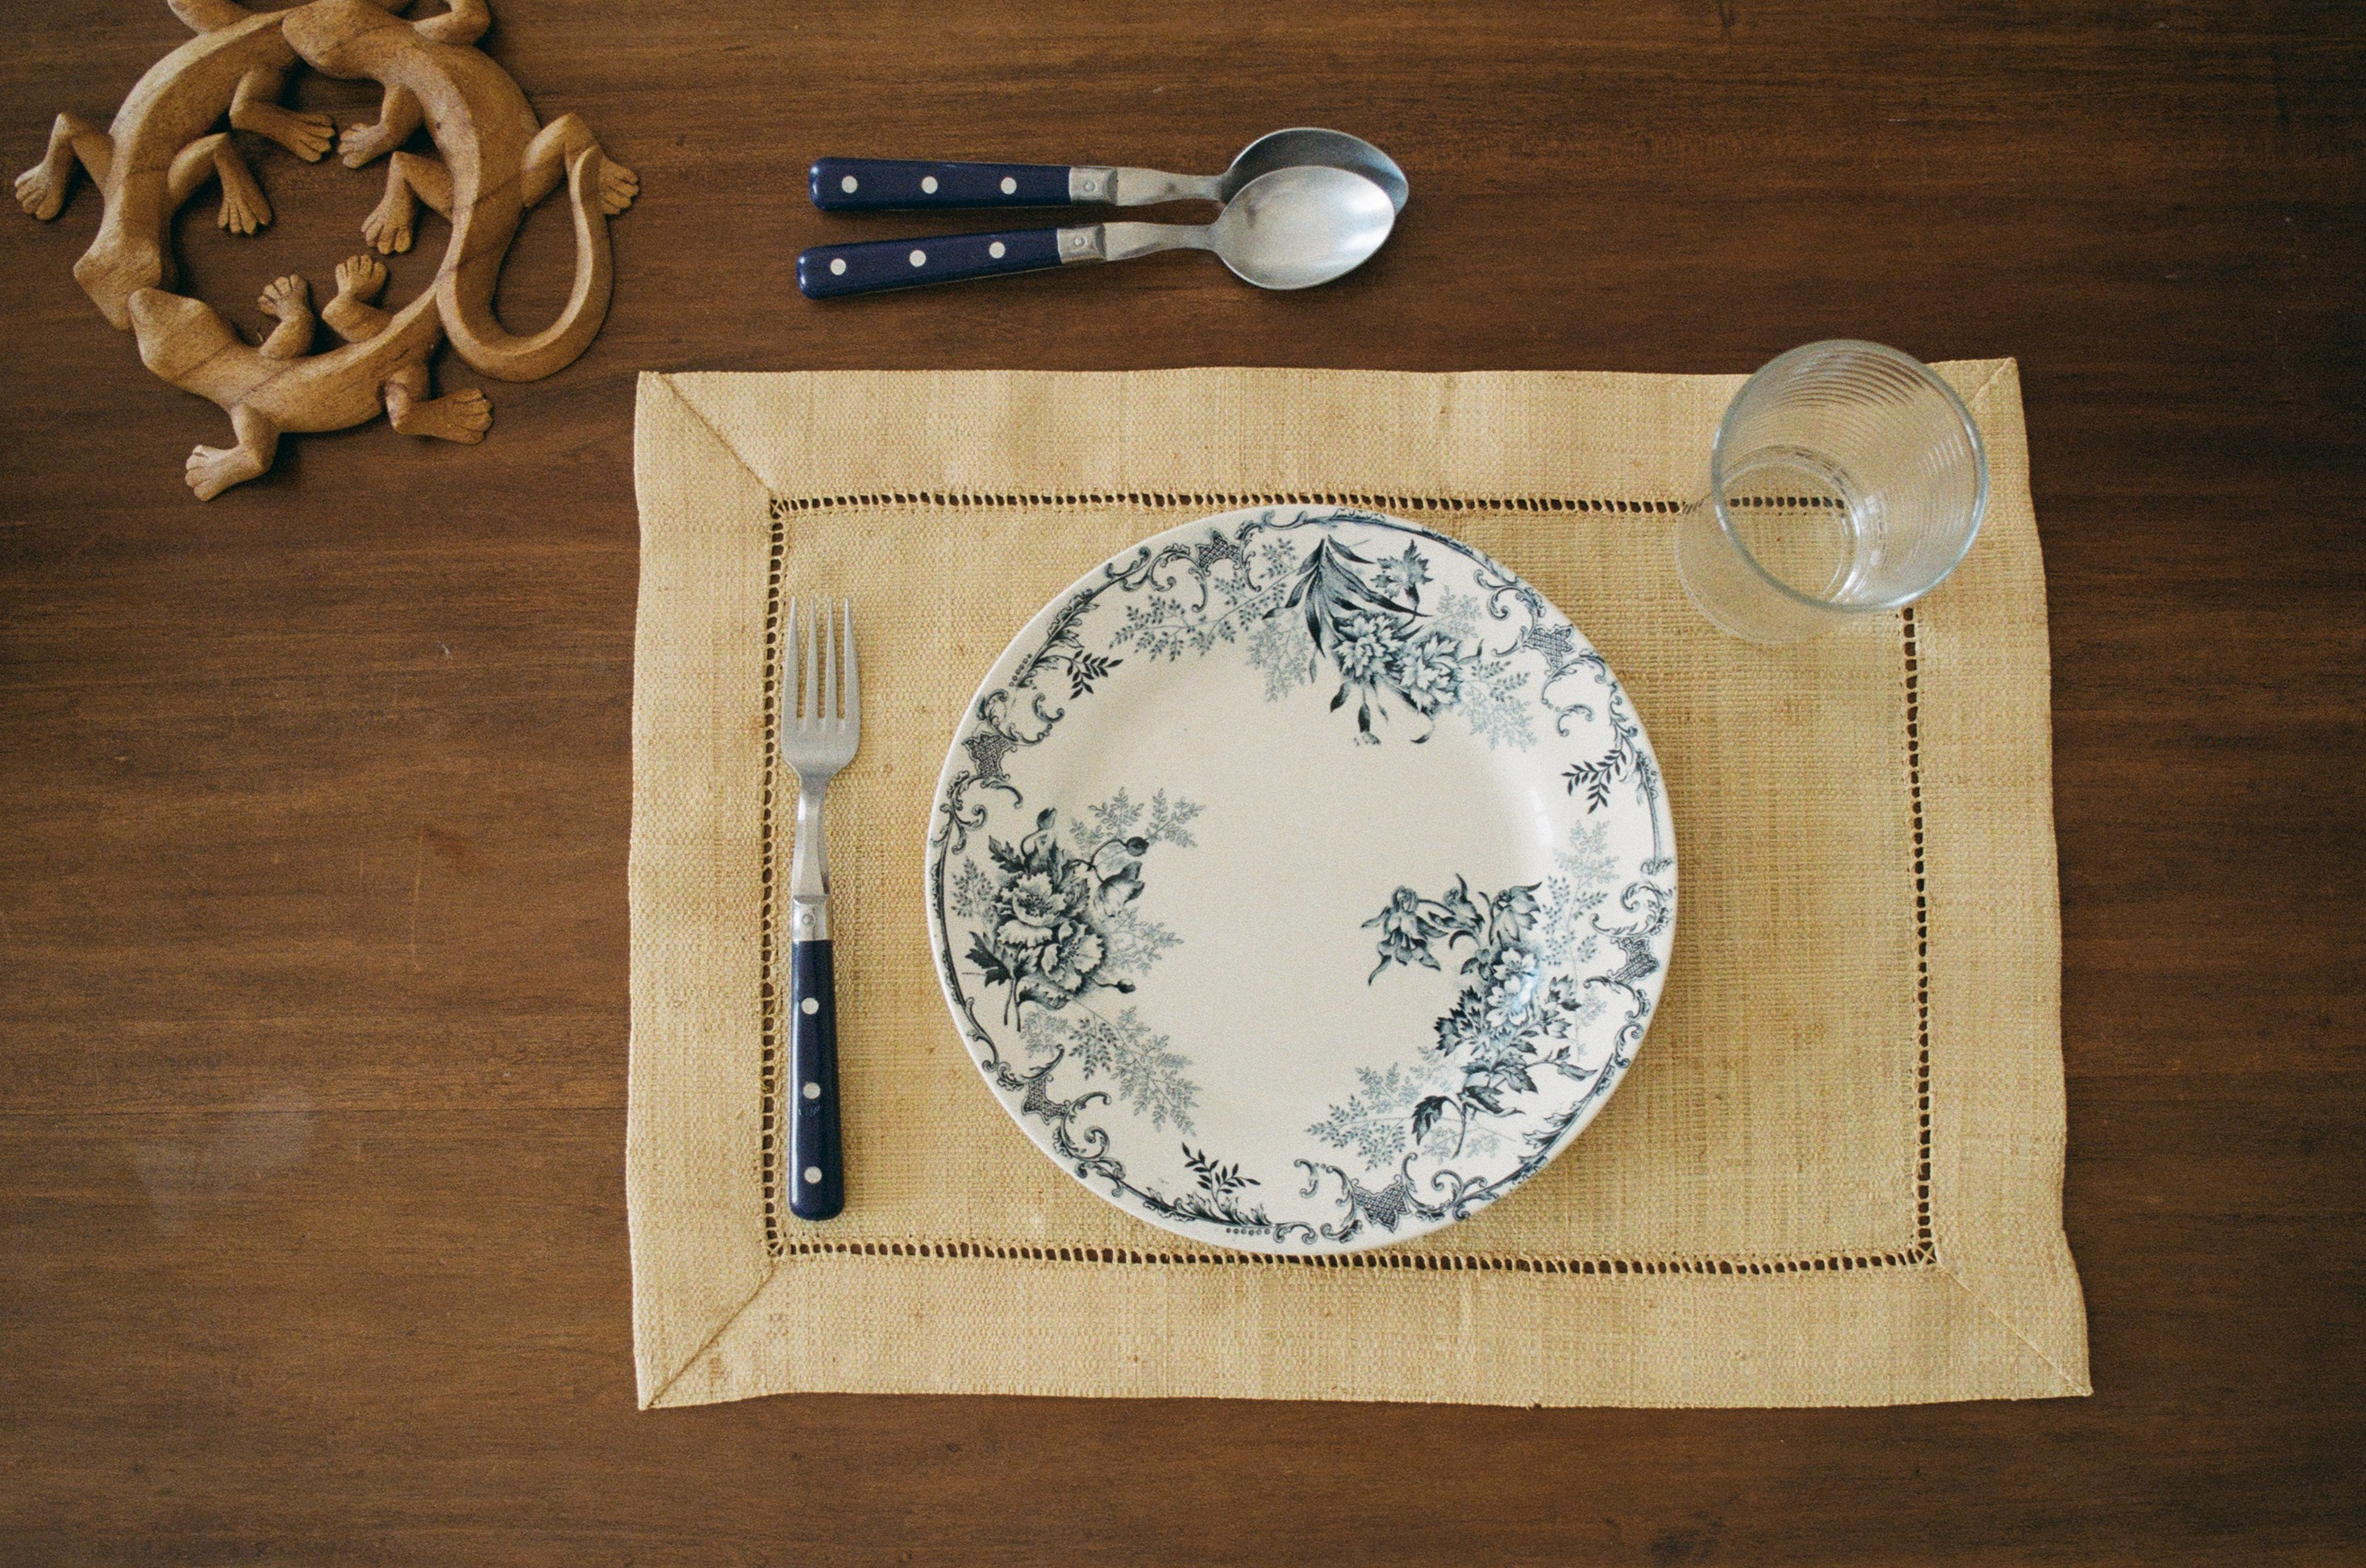 A place setting with no food